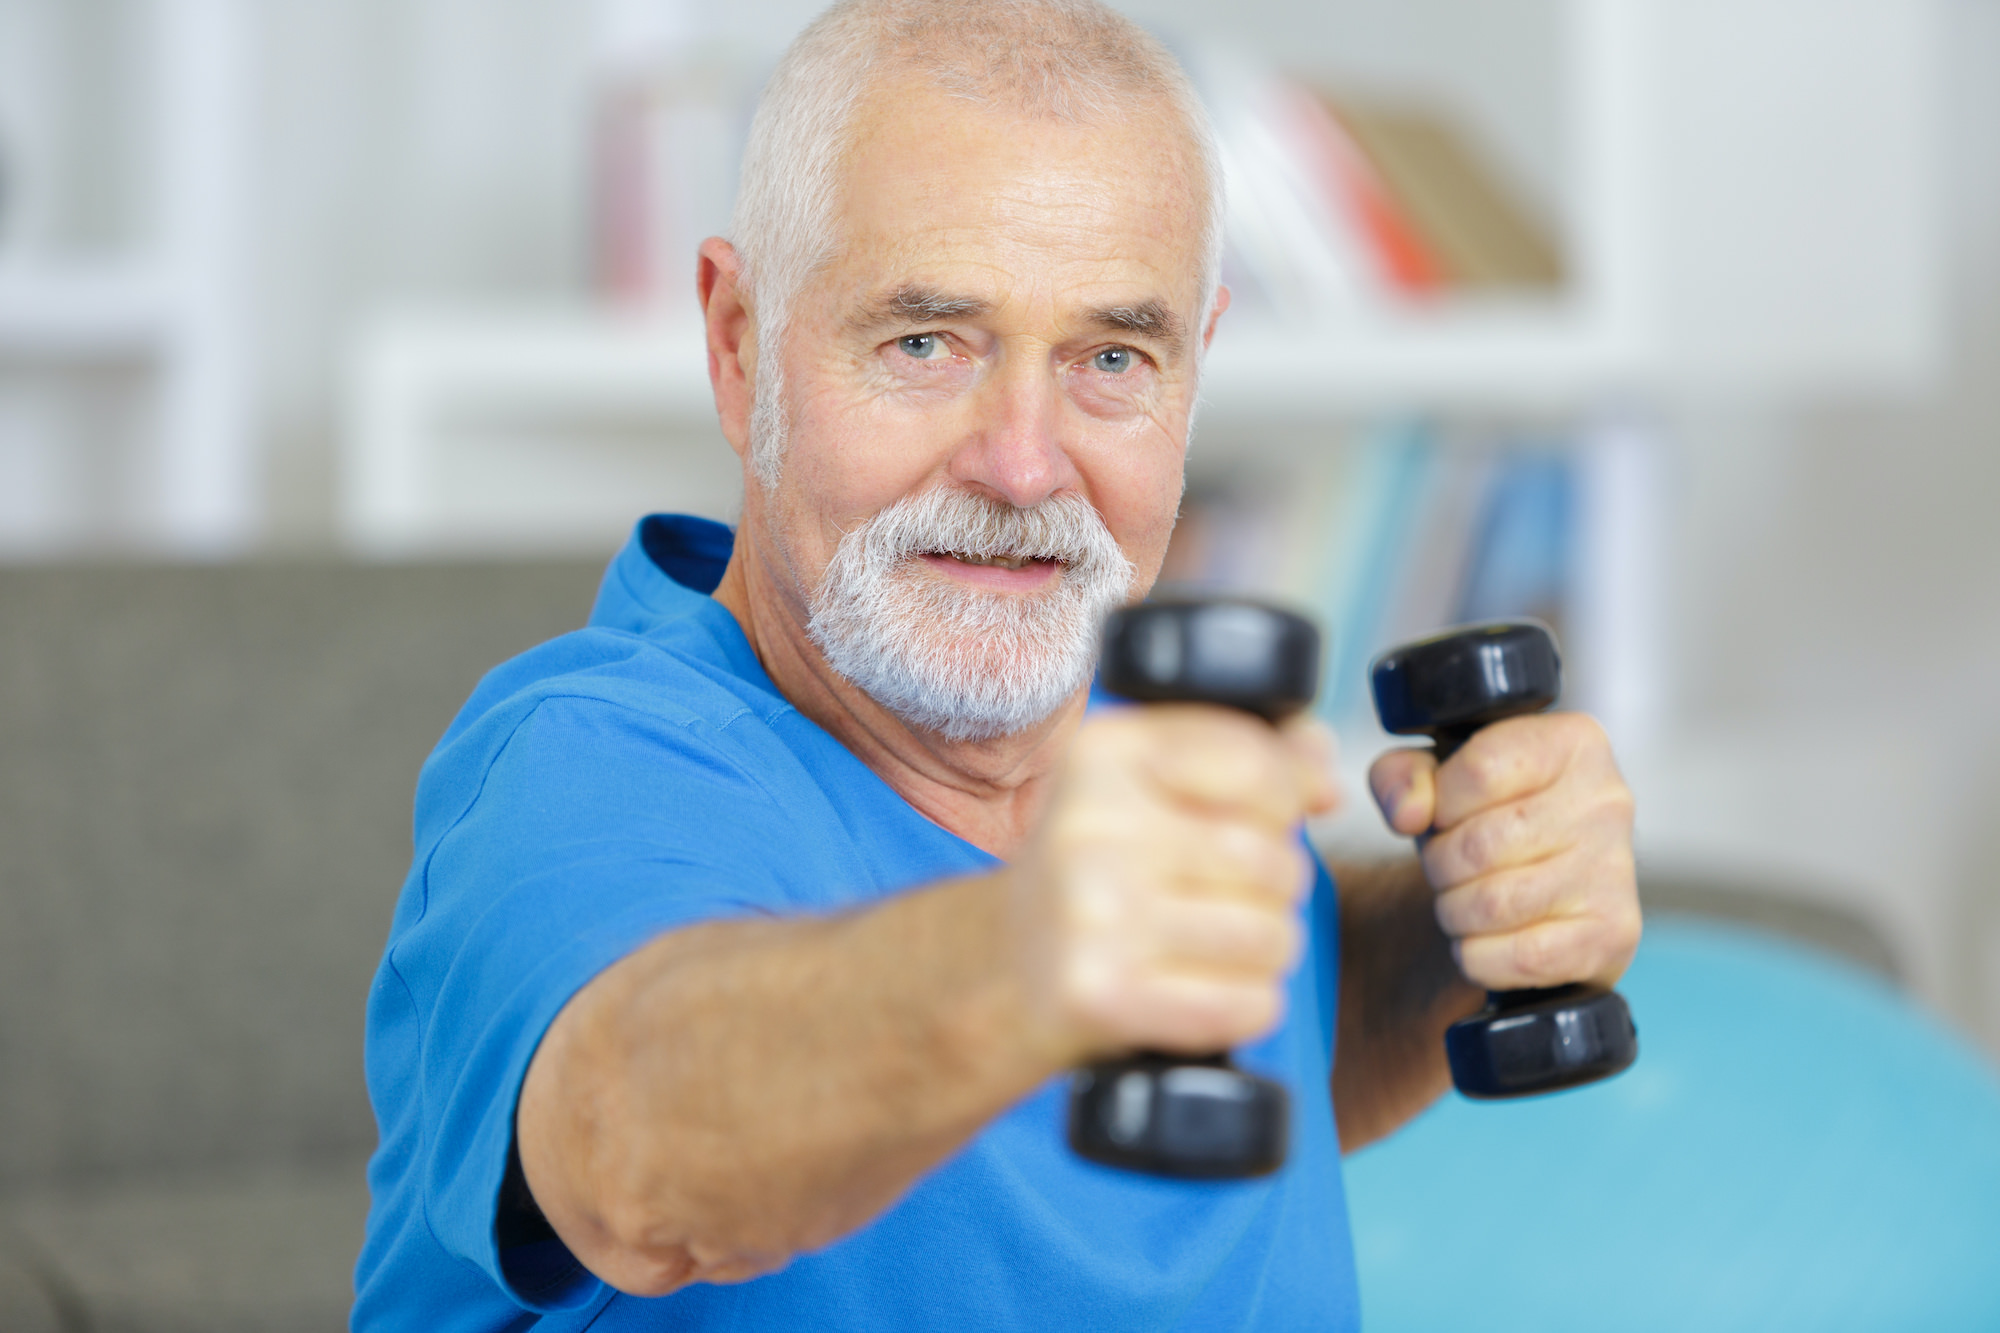 elderly man exercising with dummbells at home